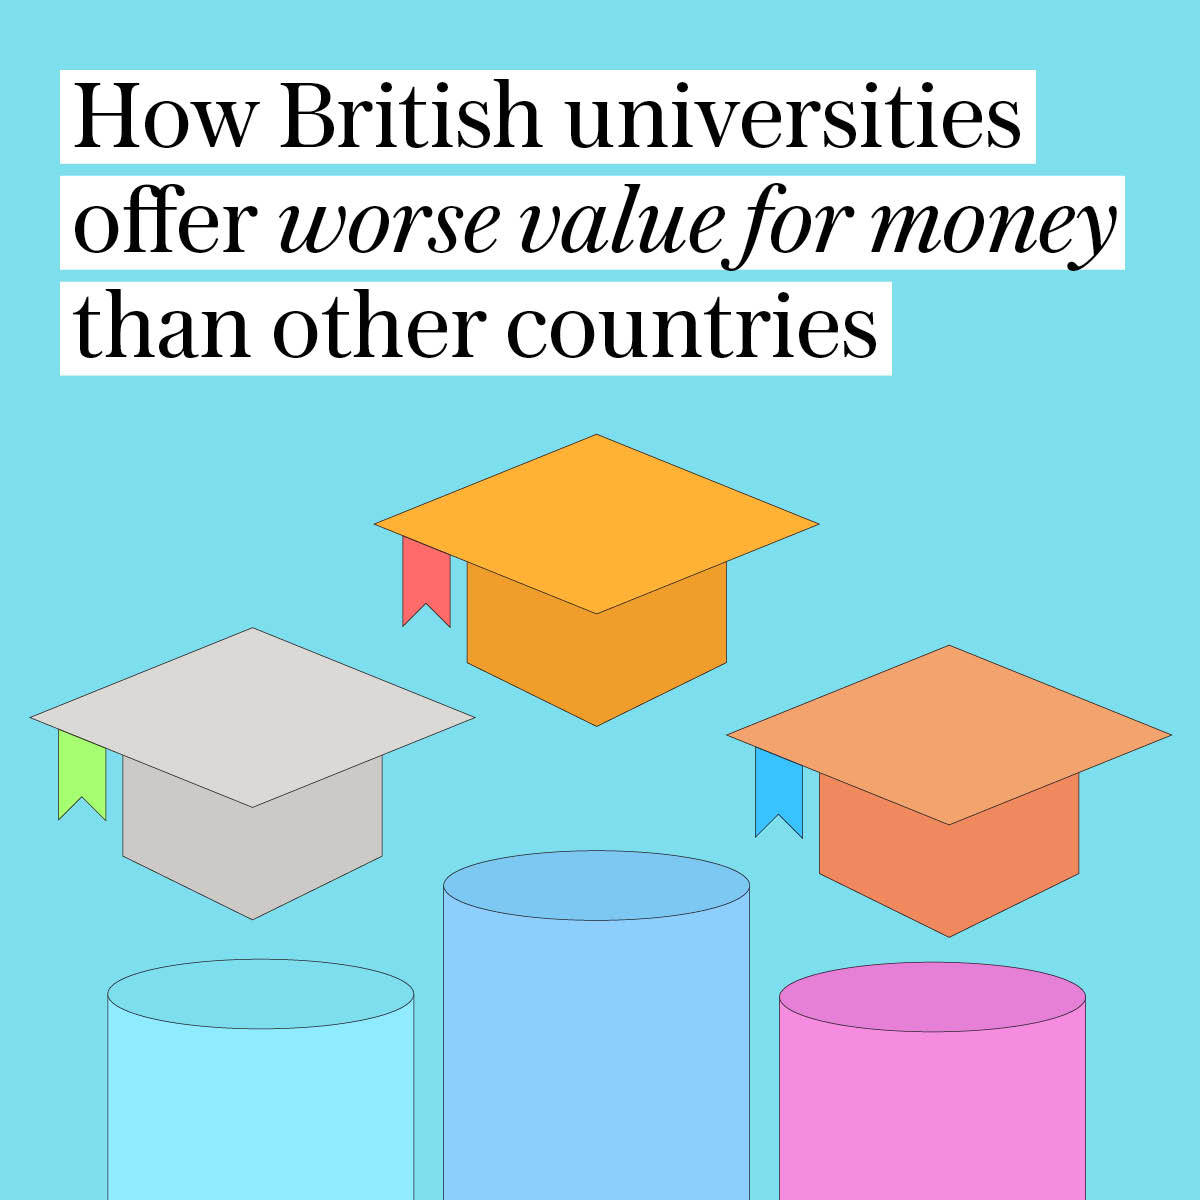 Graduating in Britain does not boost earnings as much as other nations despite students paying the highest amount of fees among western developed countries  *A thread* https://t.co/nXxPaZOmkR